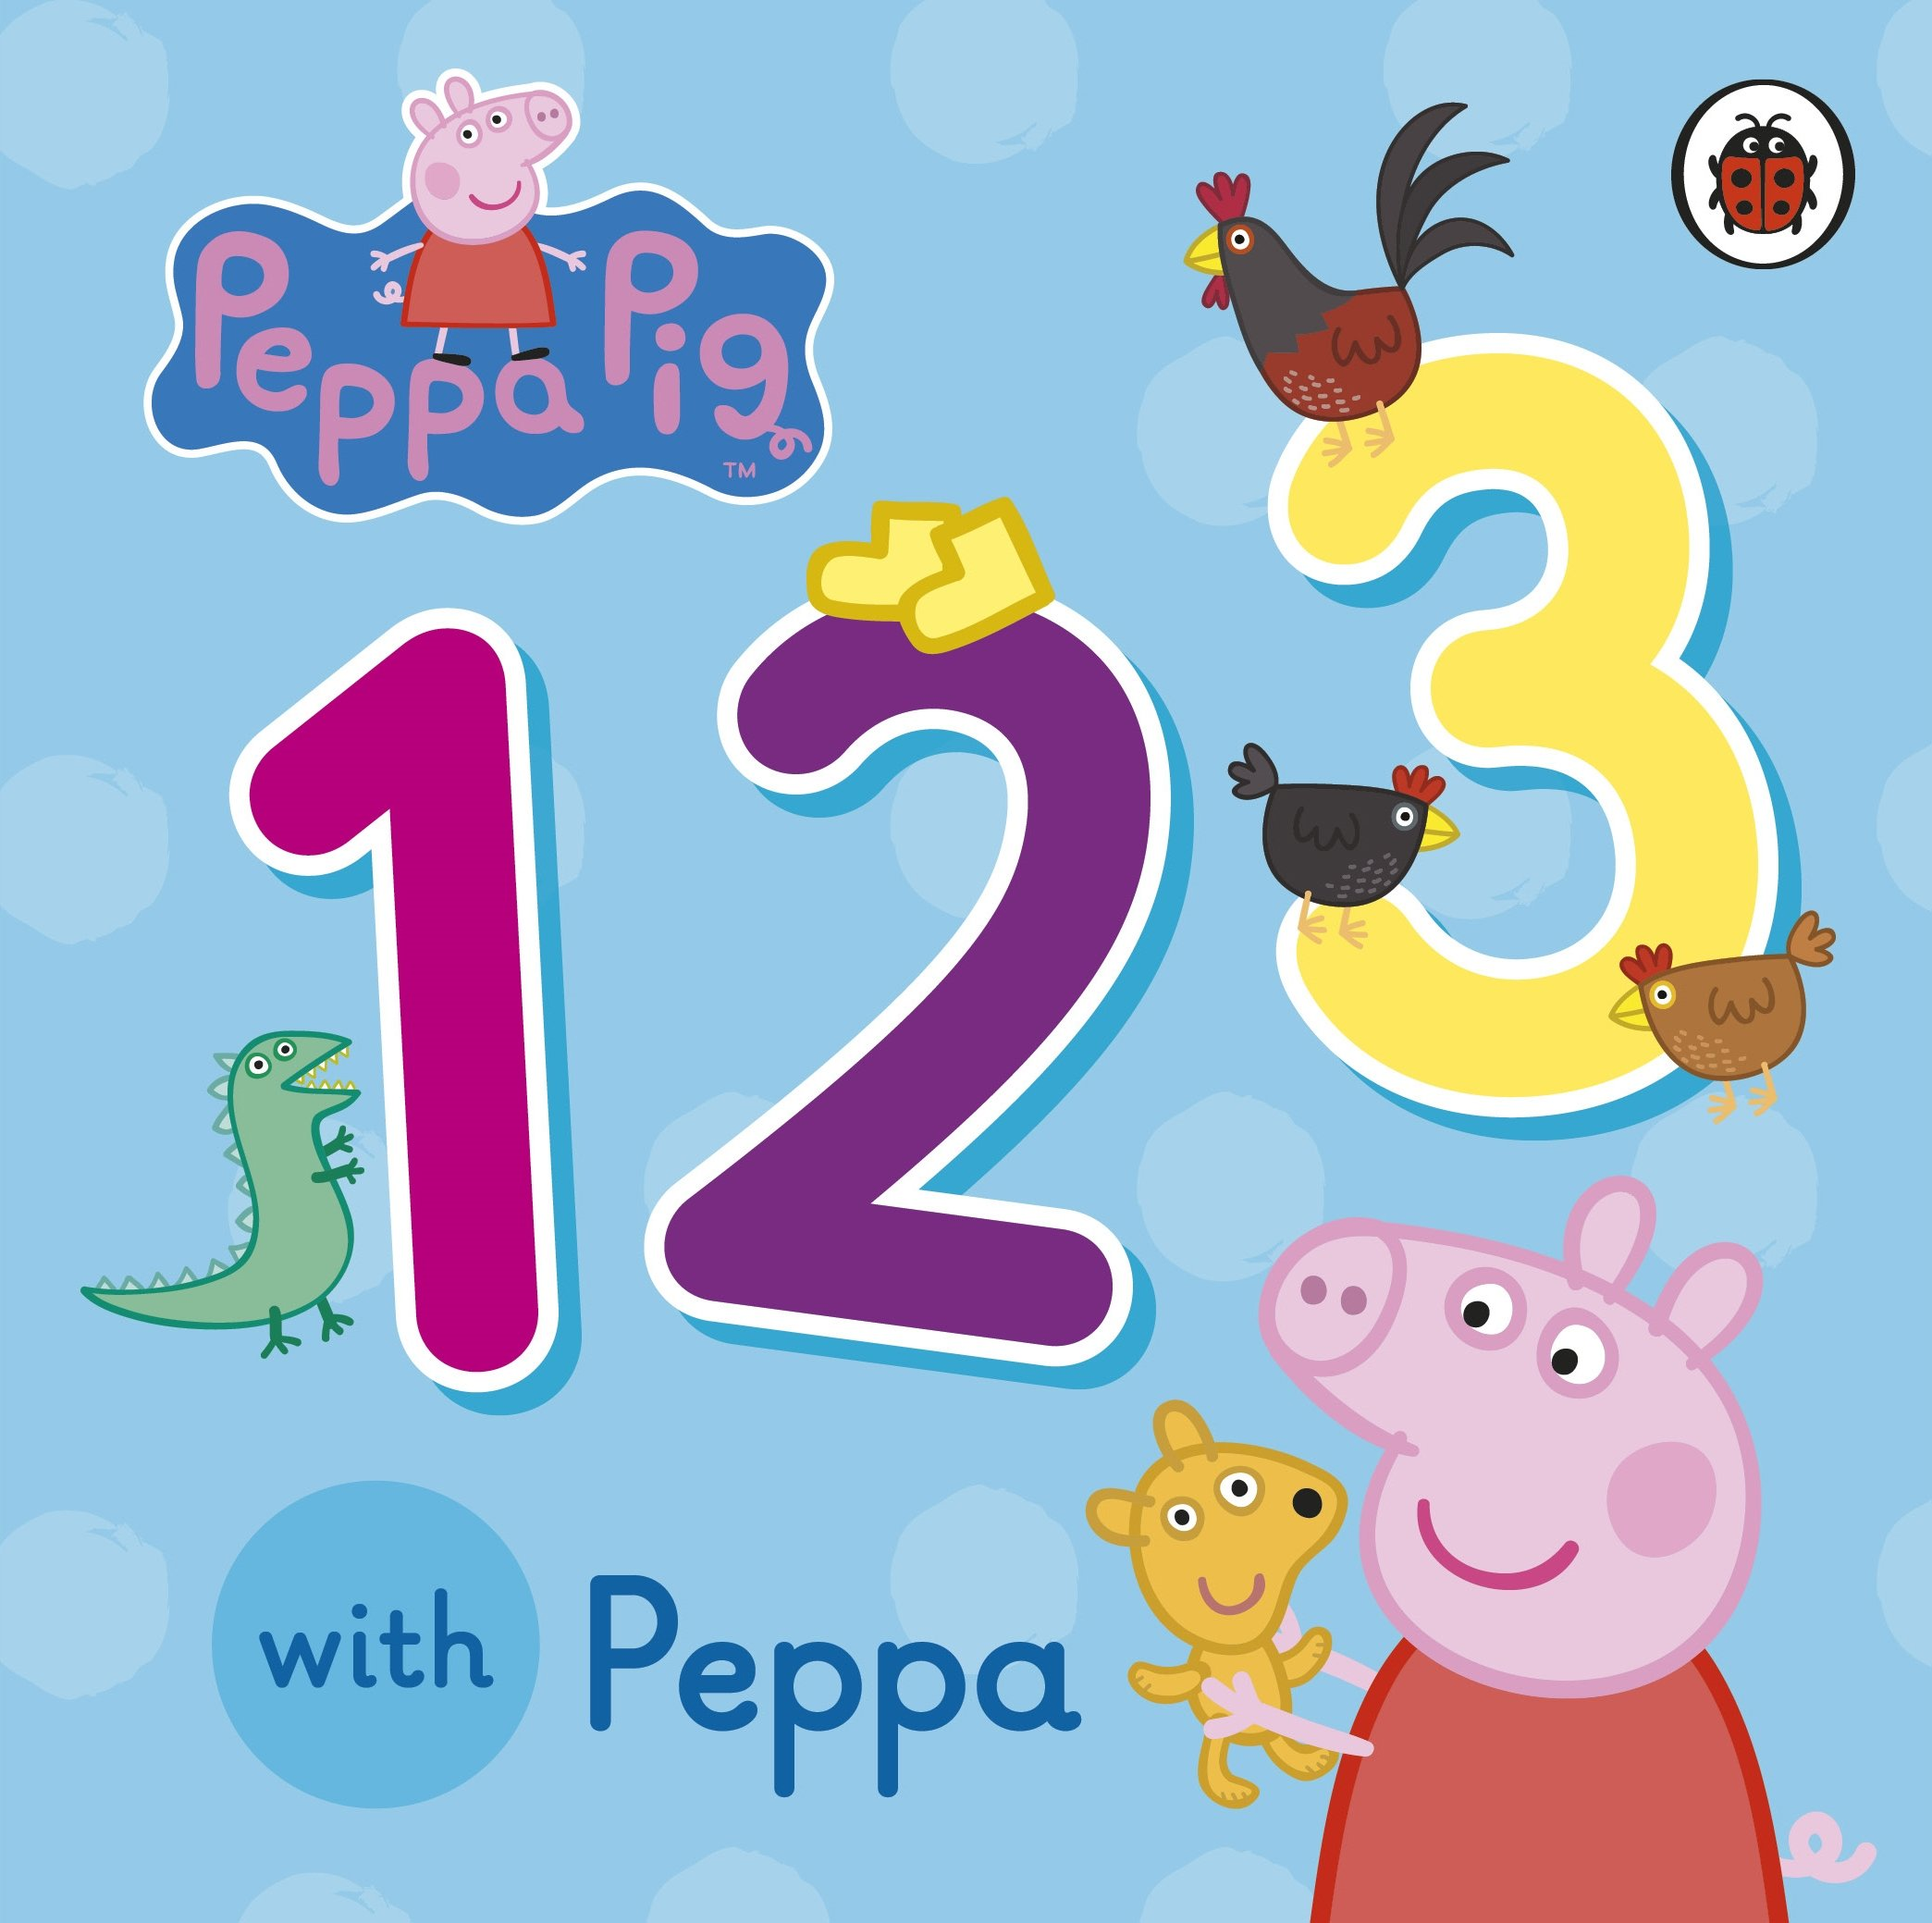 Buy Peppa Pig 123 With Peppa Book Online At Low Prices In India